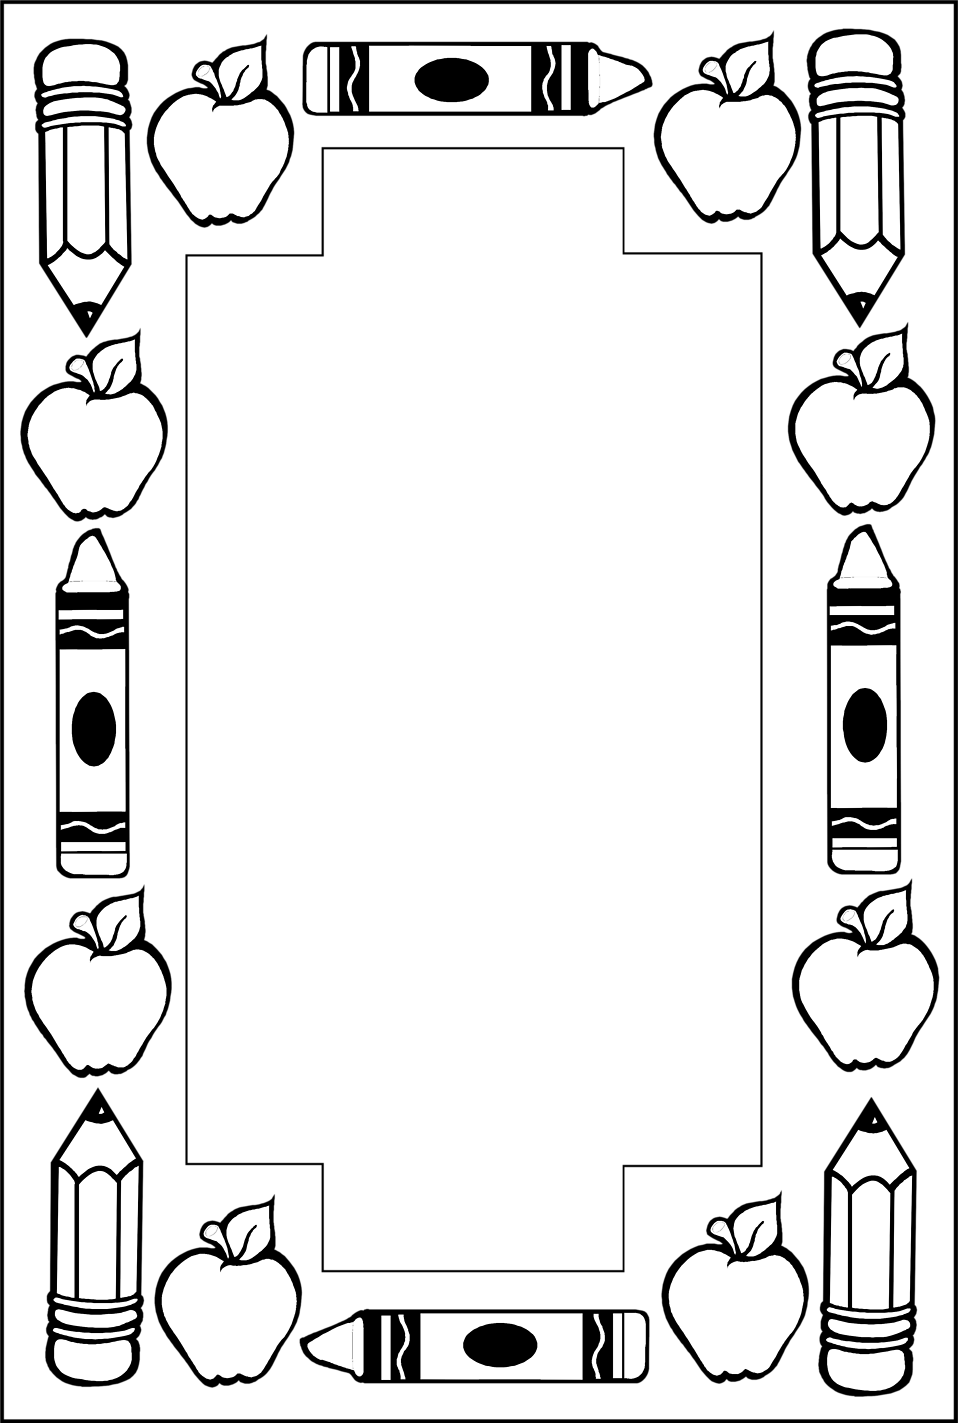 958 x 1423 · 90 kB · png, Black and White School Border Clip Art